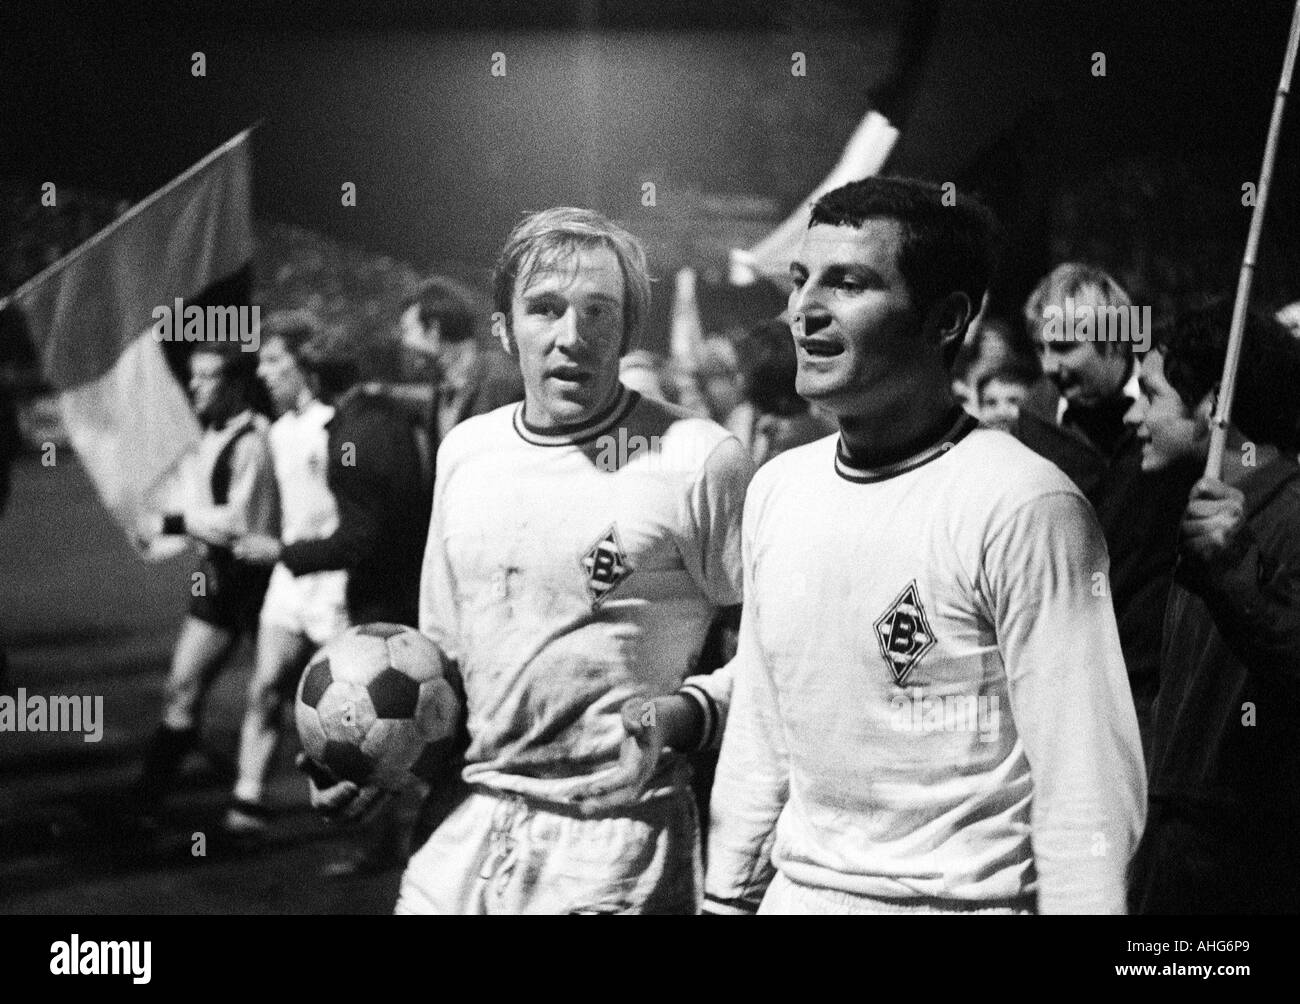 football, Bundesliga, 1969/1970, Borussia Moenchengladbach versus Alemannia Aix-La-Chapelle 5:1, Boekelberg Stadium, football players, left Guenter Netzer, right Ludwig Mueller (both Gladbach) - Stock Image